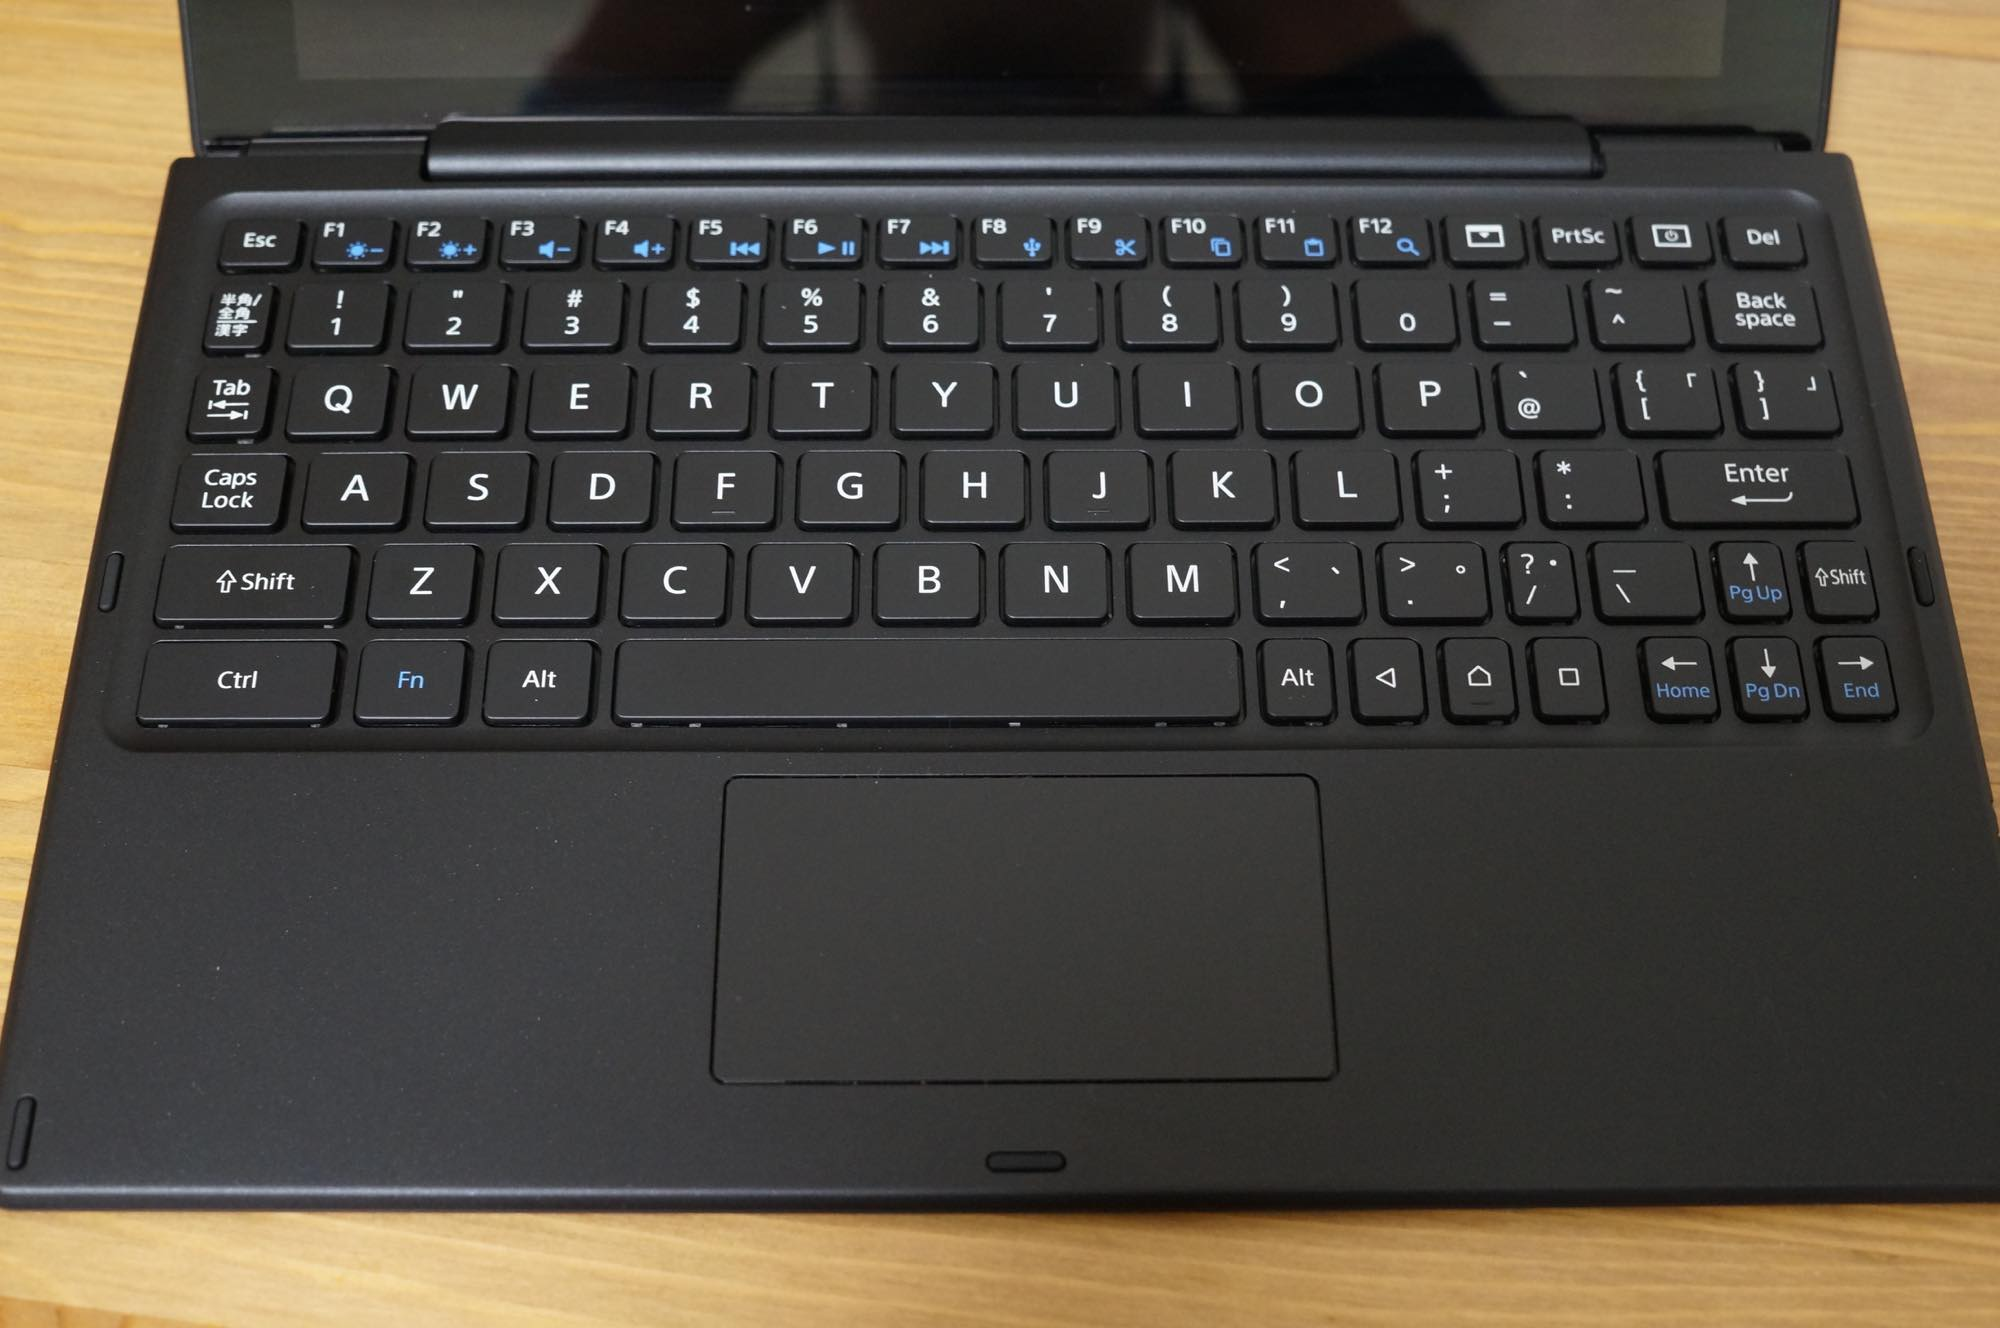 Xperia-Z4-tablet-keyboard4